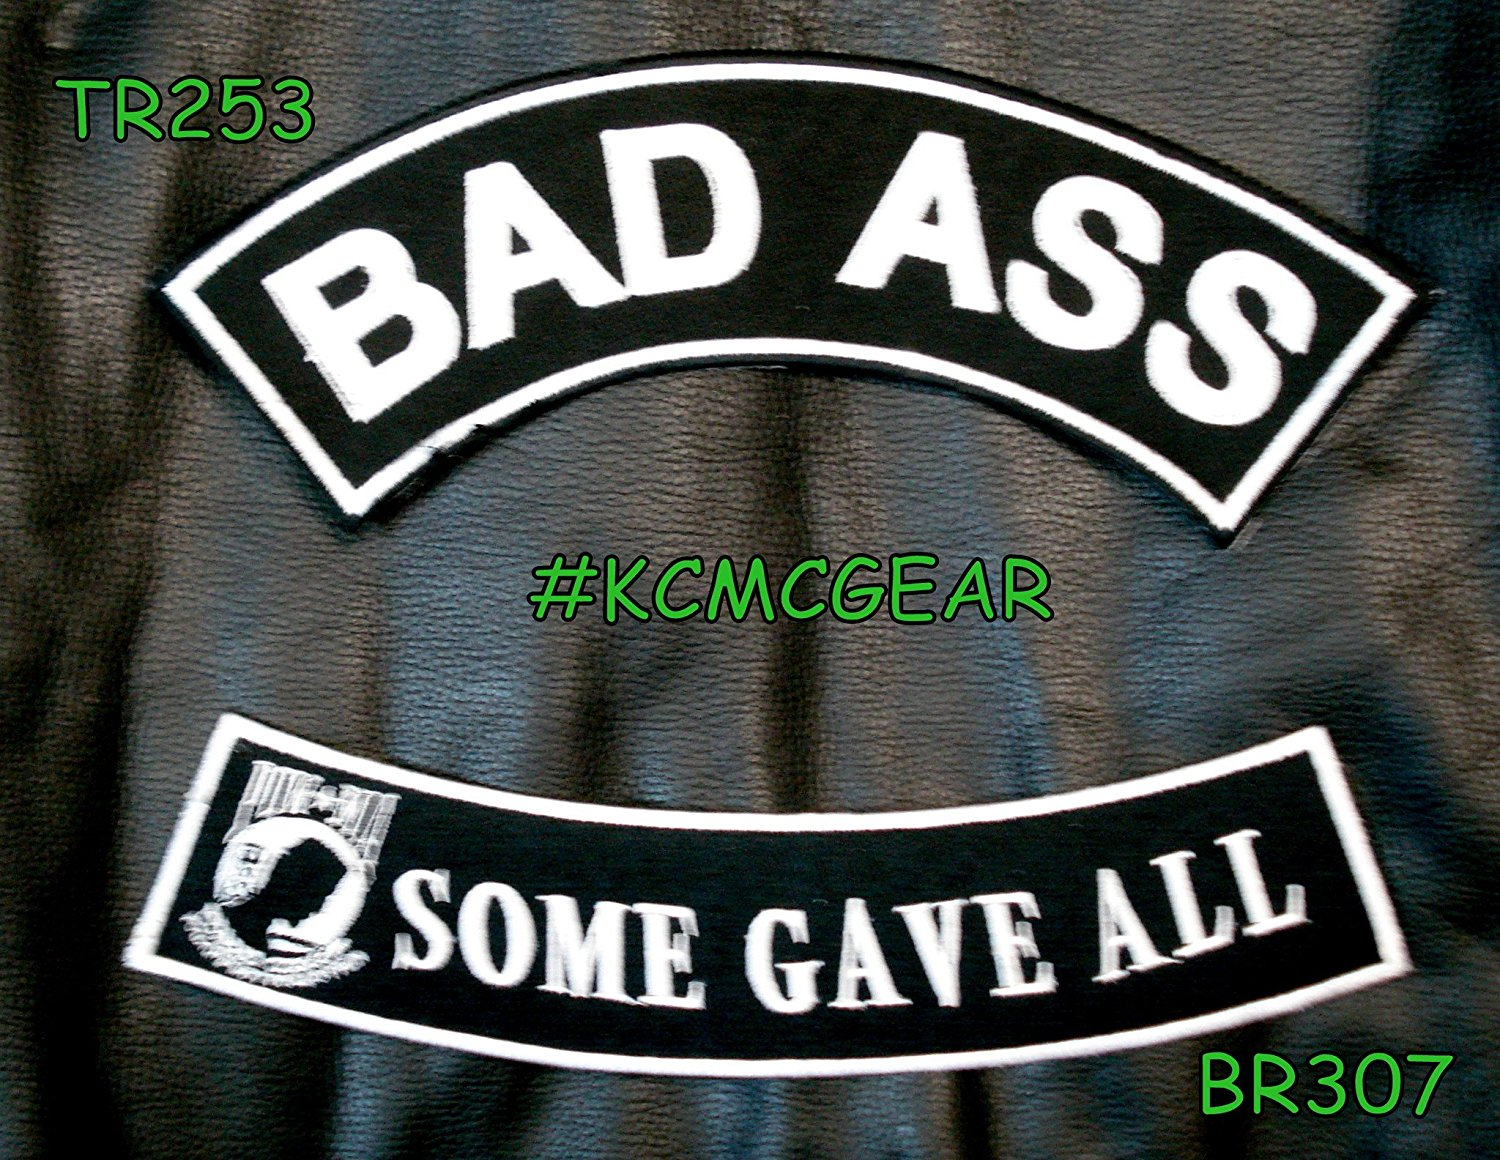 Military Biker Patch Set Bad Ass Some Gave All Embroidered Patches Sew on Patches for Jackets